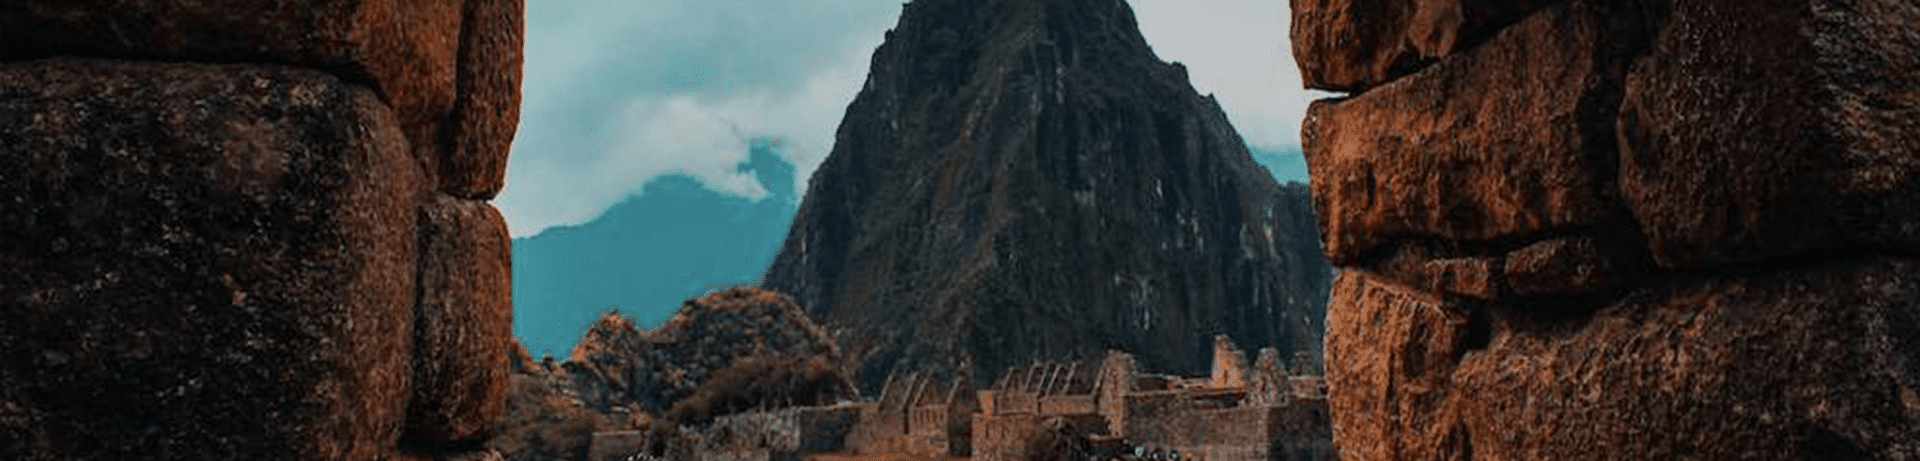 things-to-do-peru